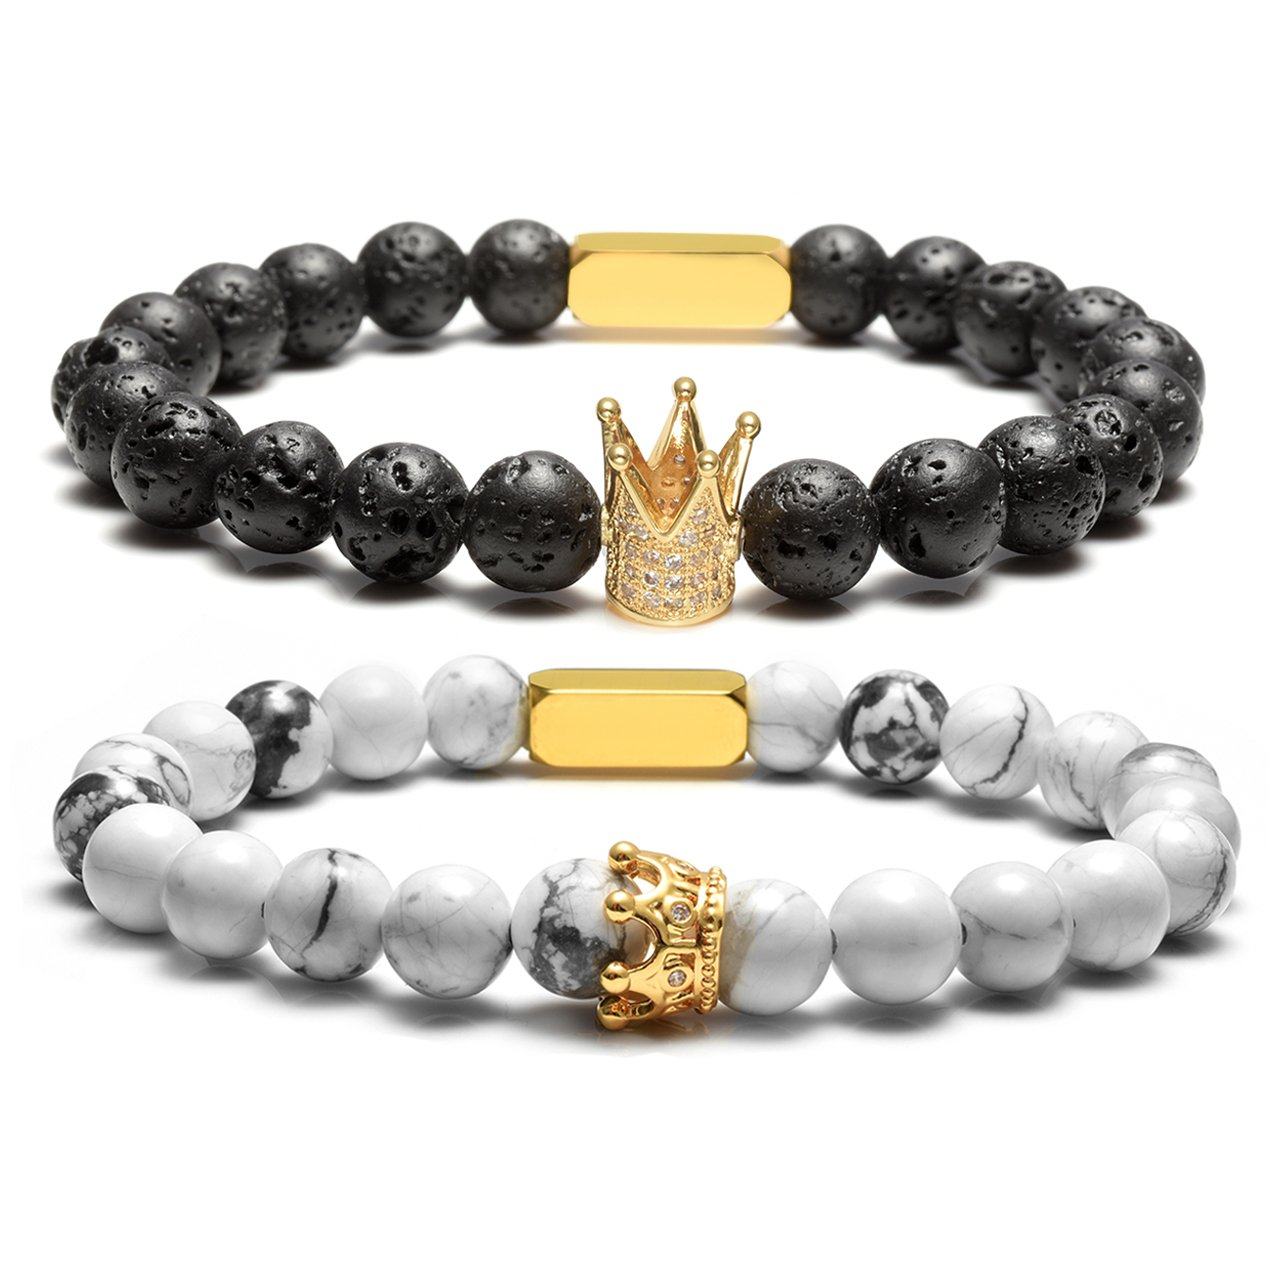 Top Plaza Aromatherapy Diffuser 8MM Natural Lava Rock White Turquoise Stone Beads Stretch Bracelet Couples Lover His Queen Her King Bracelets-Him and Hers